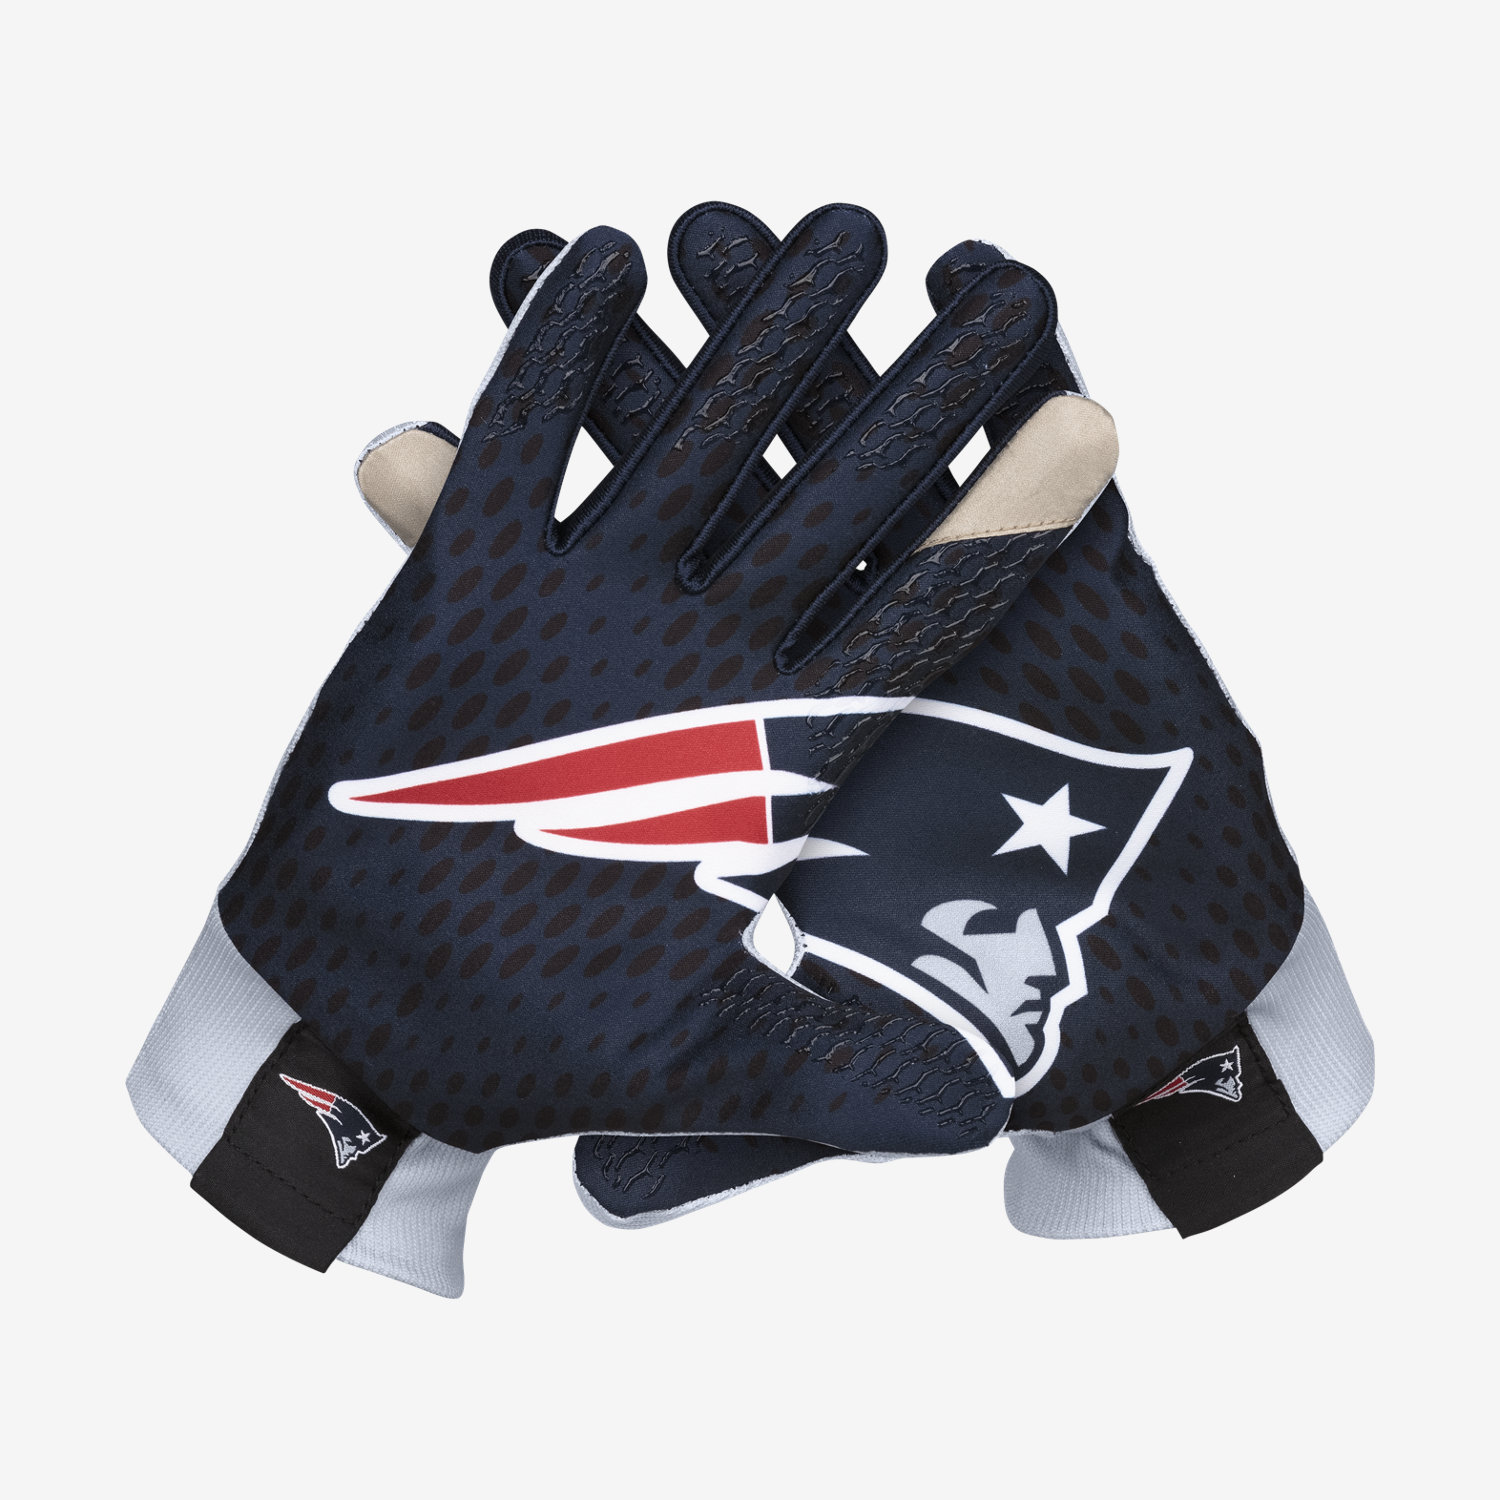 Mens sizes in gloves - Mens Sizes In Gloves 55